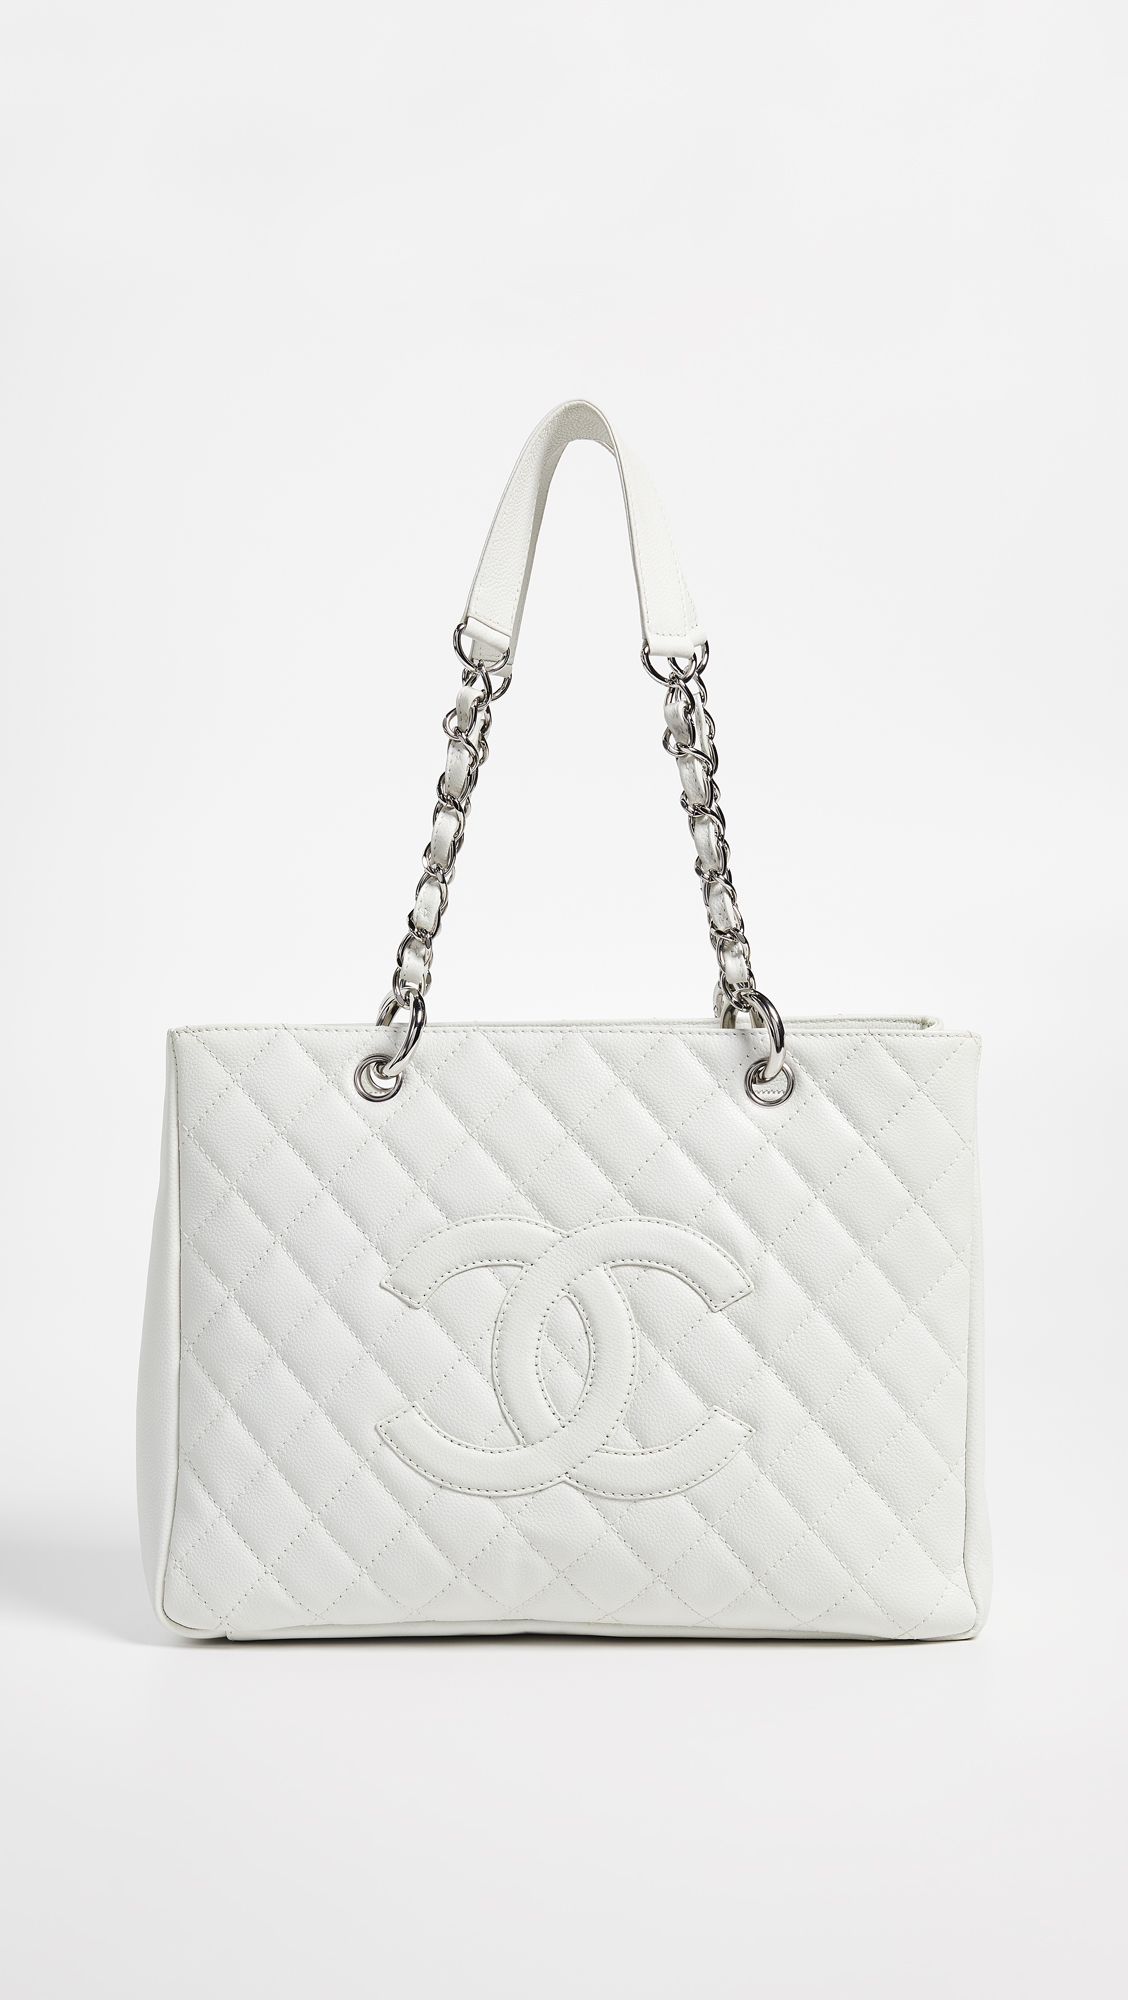 6bad992b56d3 What Goes Around Comes Around Chanel White Caviar Grand Shopper Tote ...